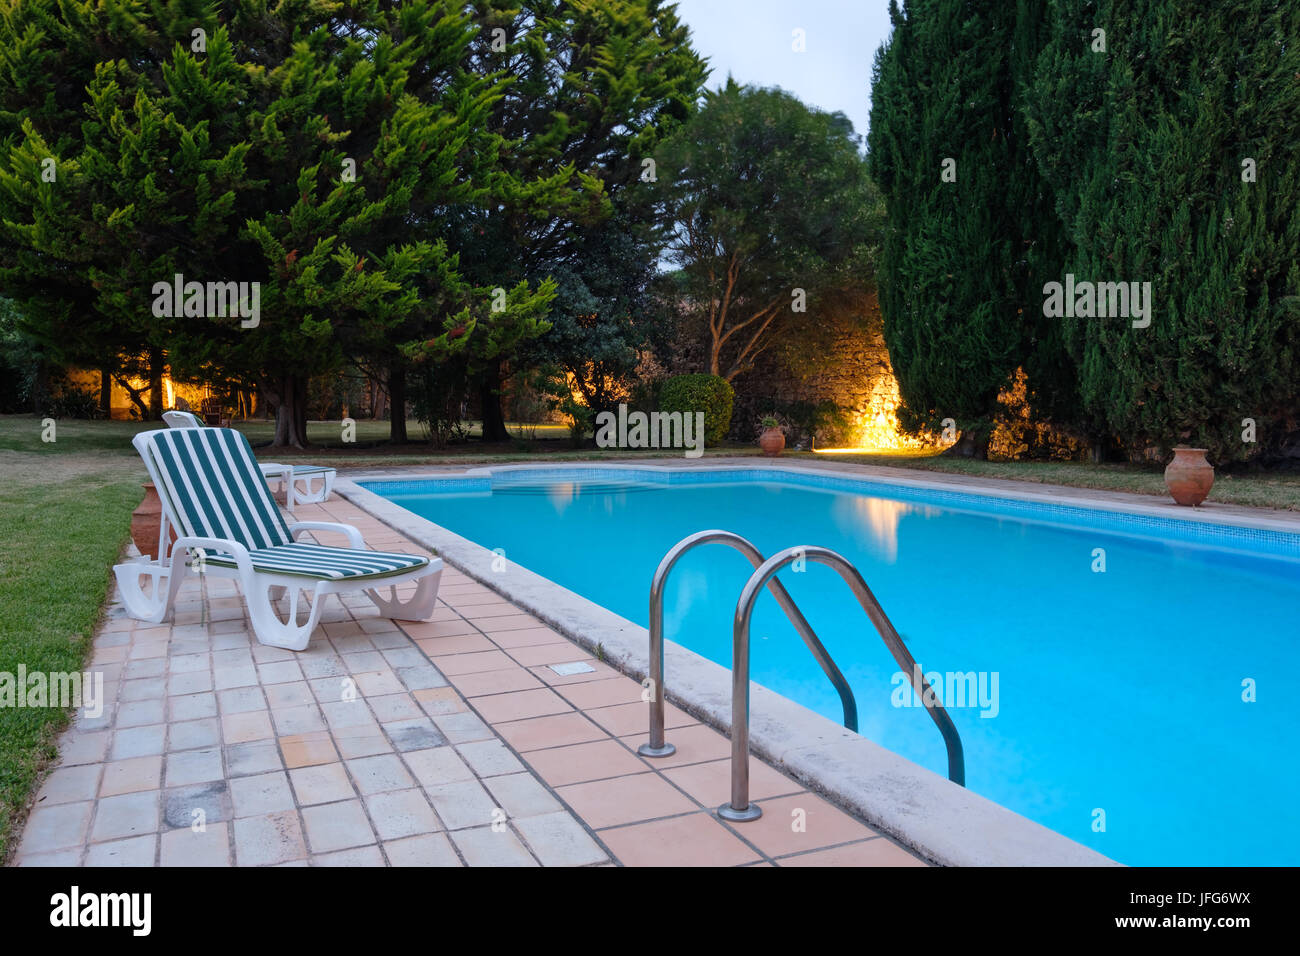 Deck chair next to outdoor swimming pool - Stock Image